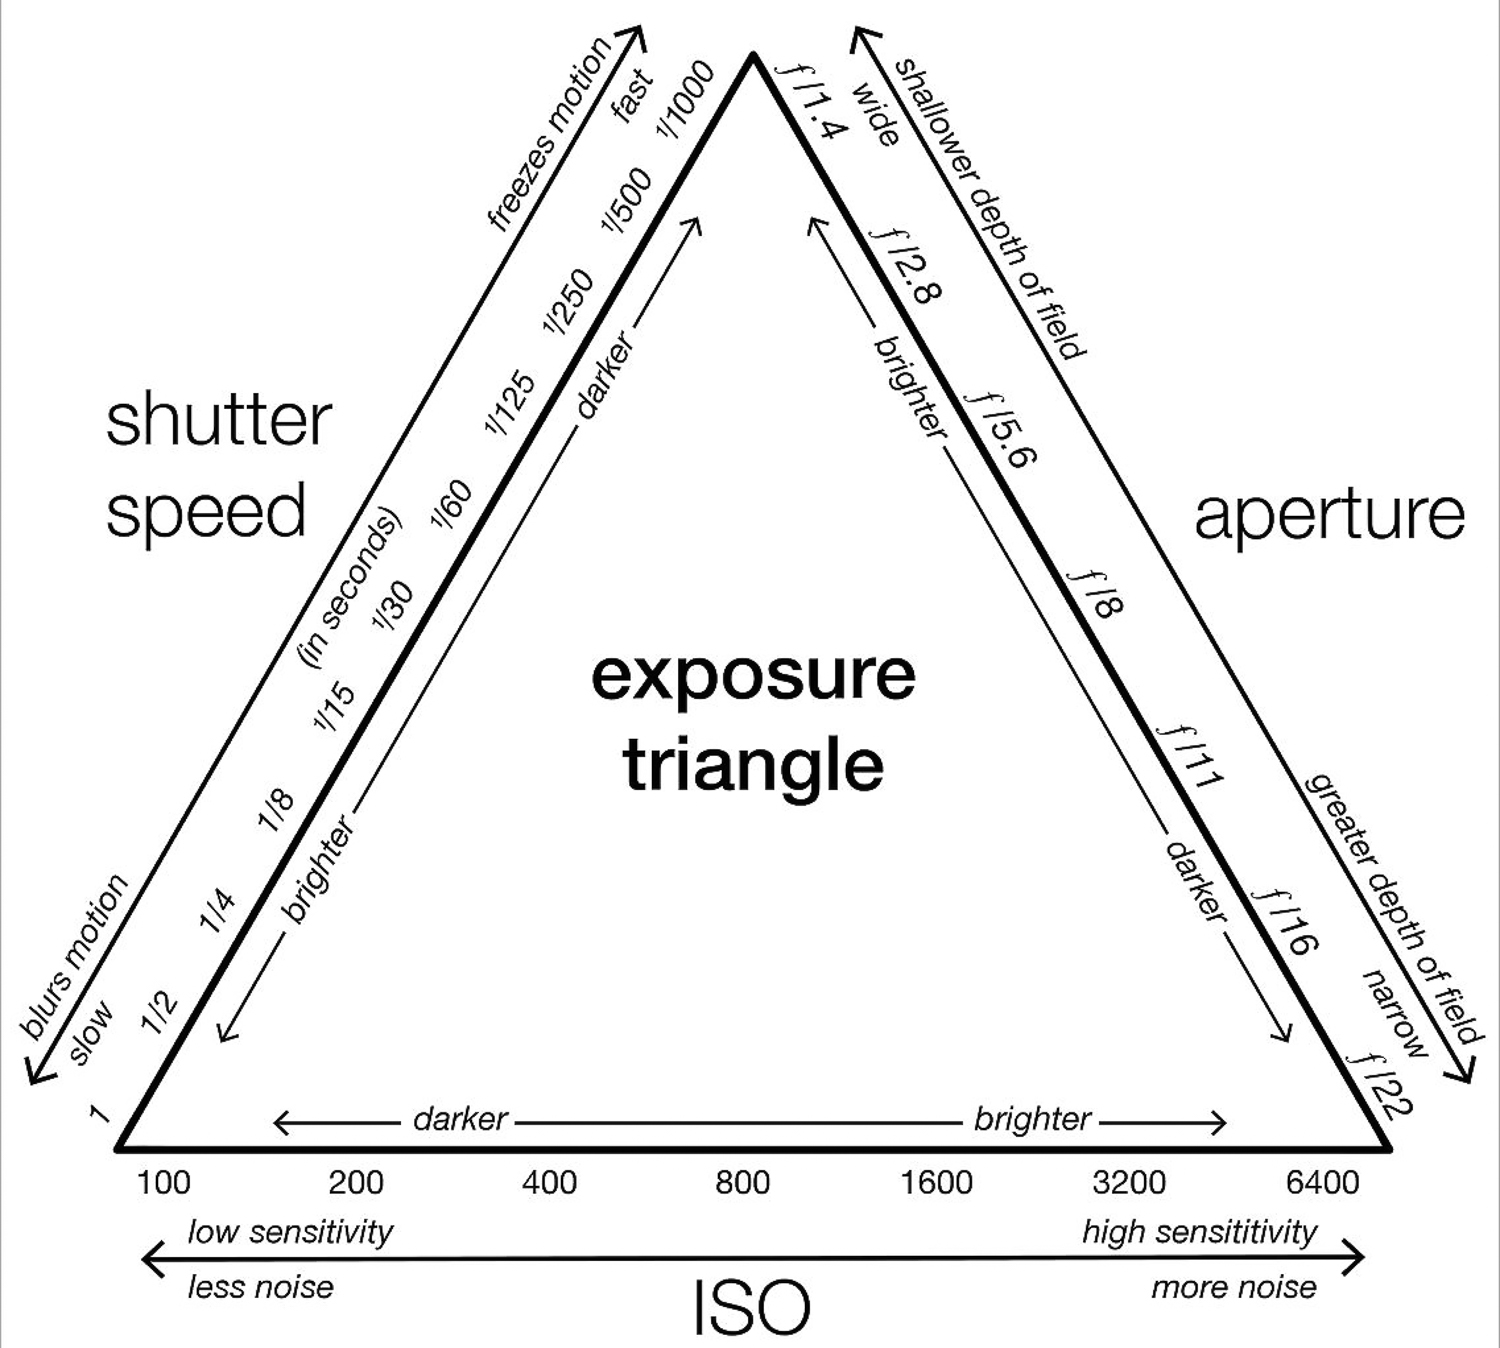 Image: From the simplest to the most complex camera, three things – Aperture, Shutter Speed, and ISO...